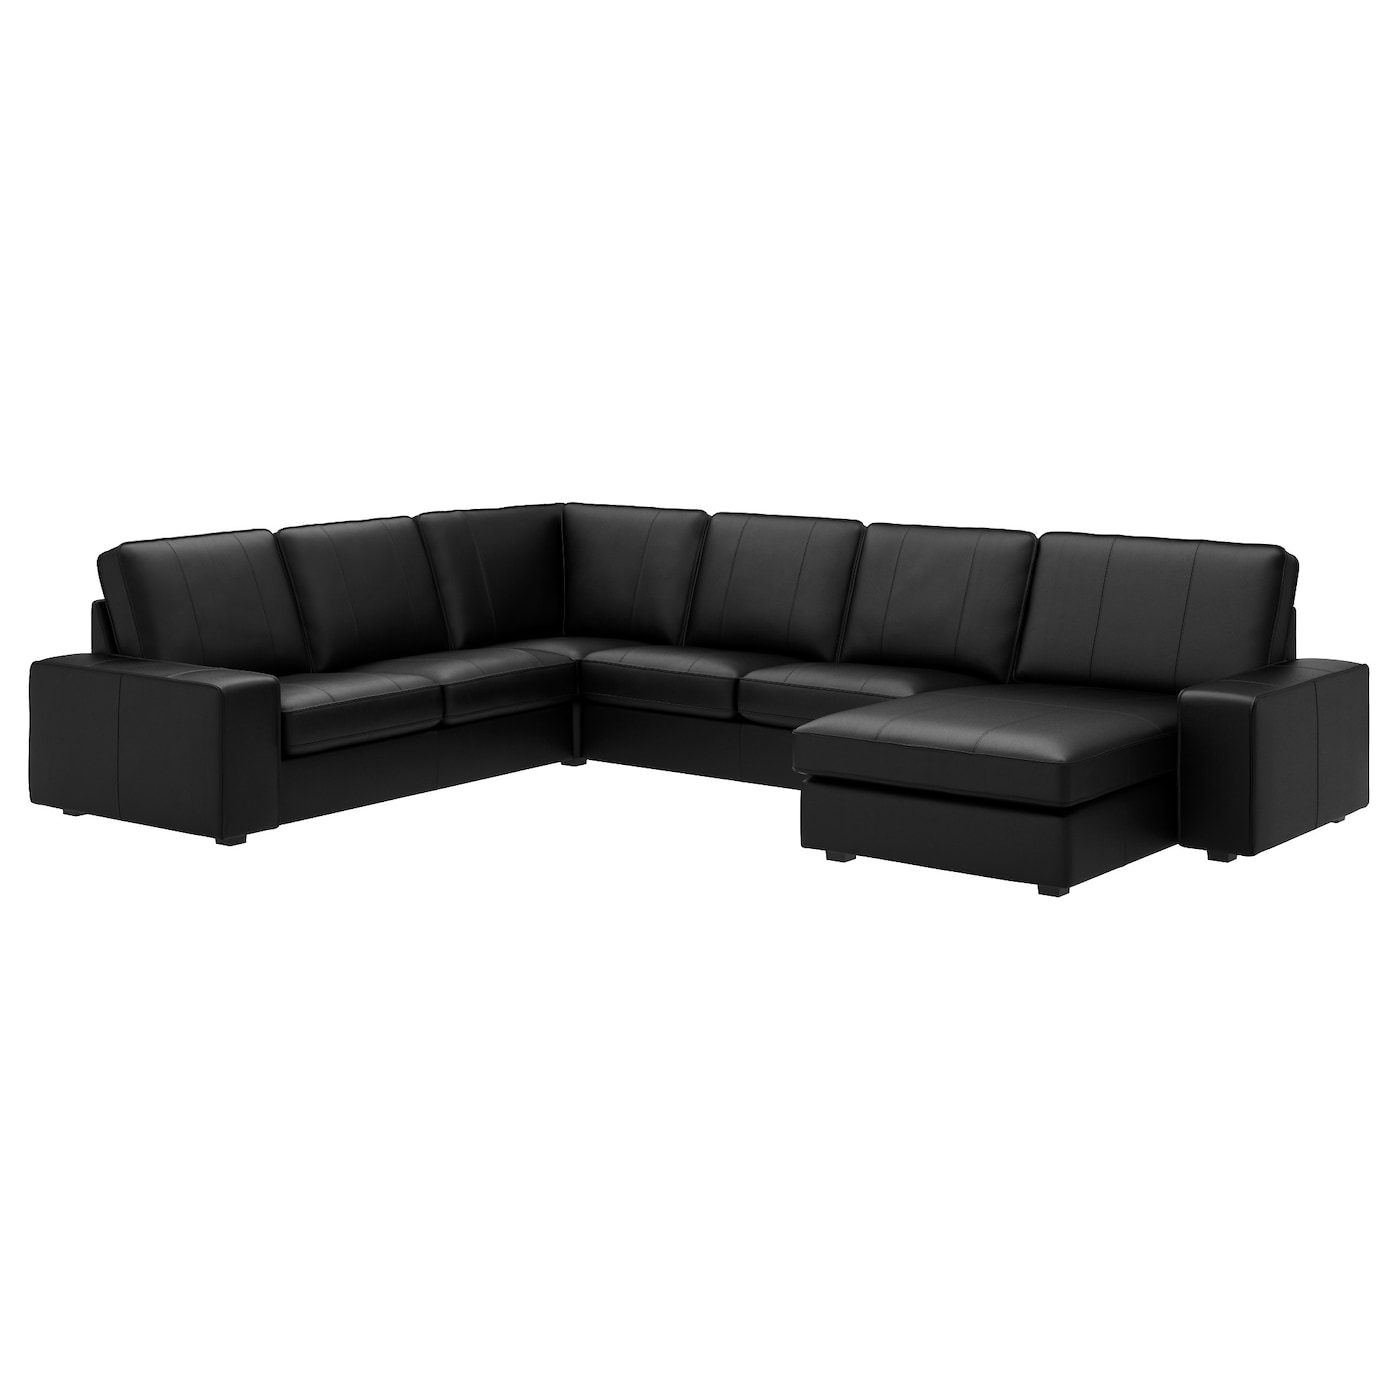 KIVIK Corner sofa 5 seat With chaise longue grann bomstad black